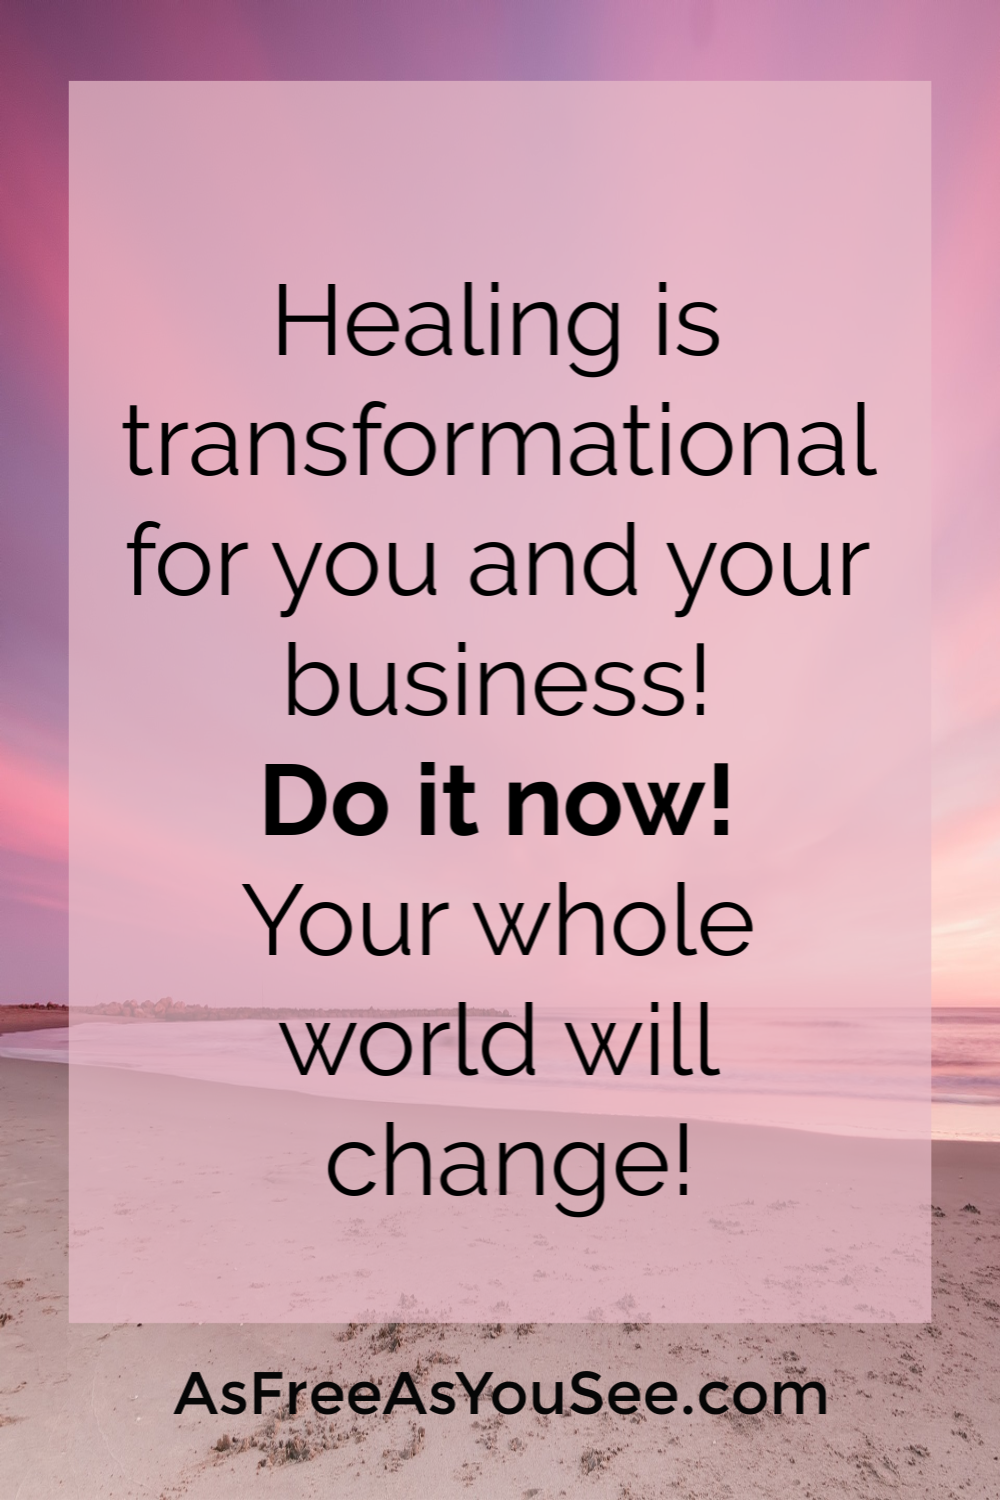 Do you struggle with showing up consistently for you and your business? The struggle is real. In this blog, dive deep in what you can do for yourself that also transforms your business. Get 3 tips on what happens to your business when you heal. Plus how to start if you can't invest and what to search for when you can invest. Healing is the name of the game, and you can find out why with this self-help blog. Read the blog and let go of your fears today.